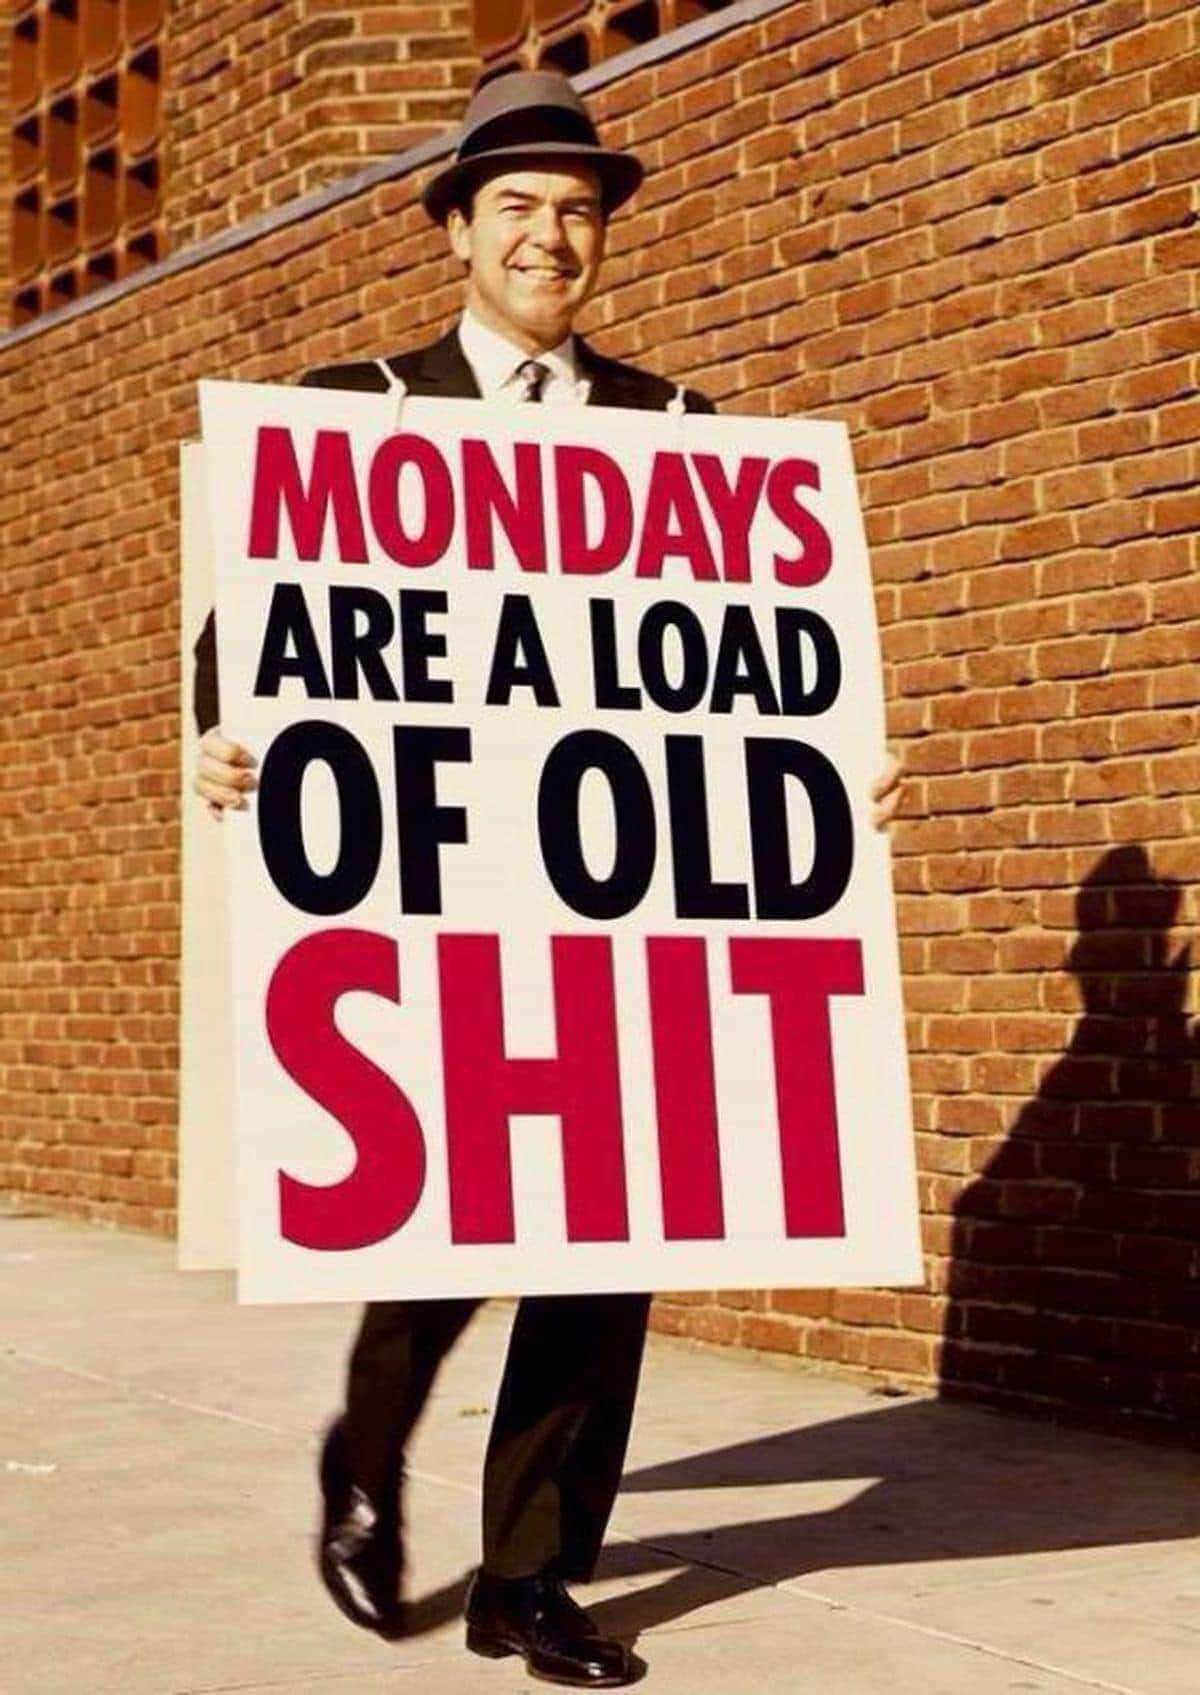 Mondays are a load ... | Lustiges | Was is hier eigentlich los?